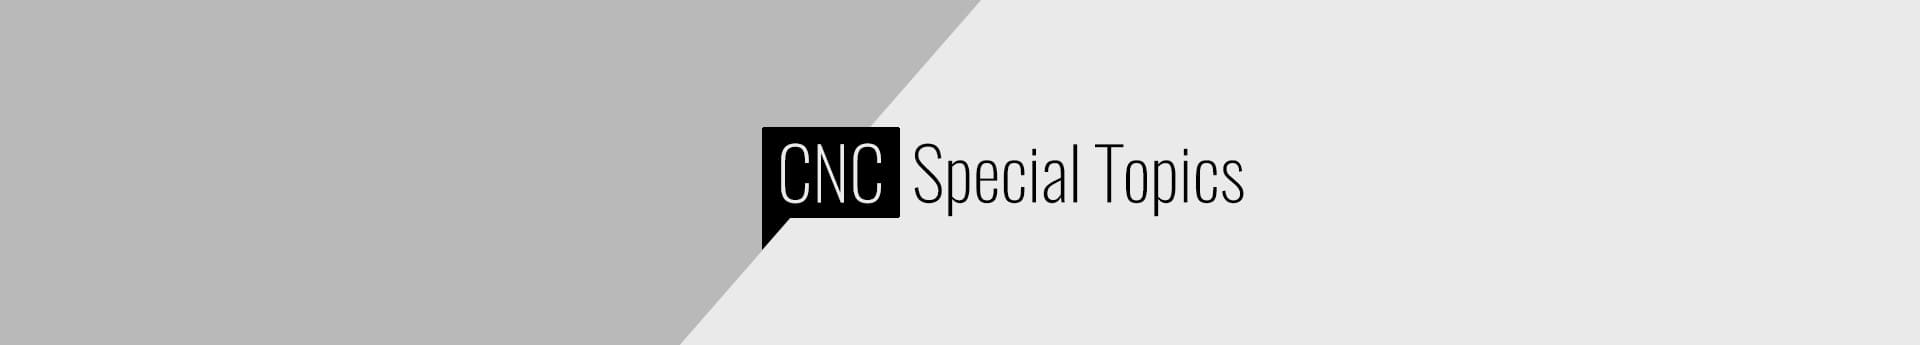 CNC Special Topics for CNC router Machine, CNC laser machine, Furniture production line and Plasma cutter.